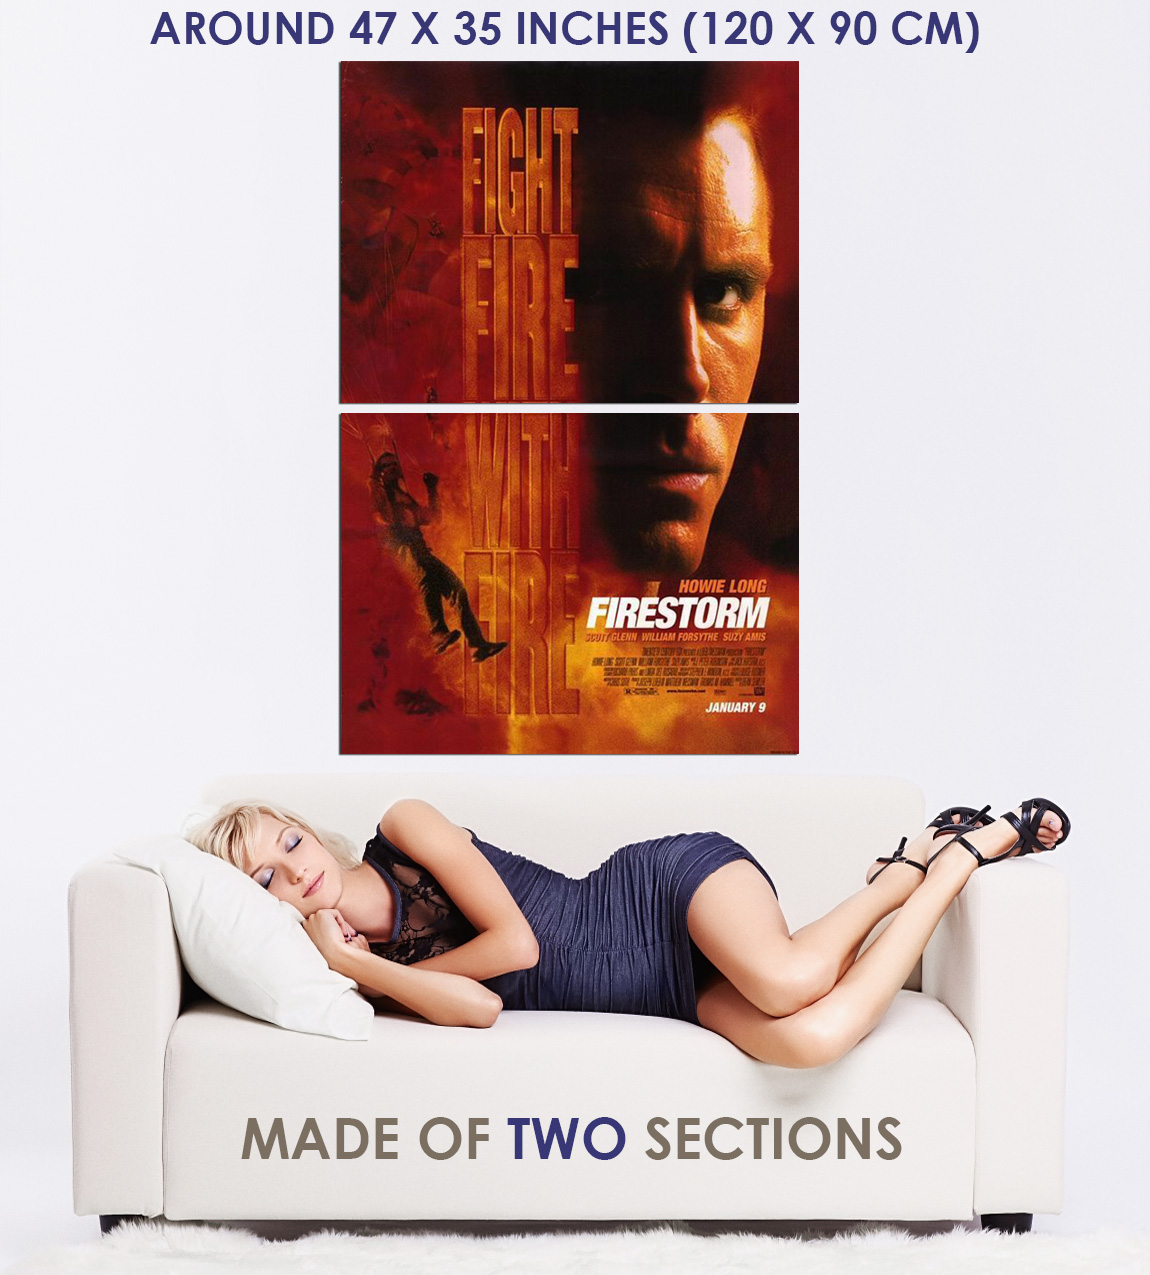 237502-FIRESTORM-1998-Movie-Howie-Long-Suzy-Amis-WALL-PRINT-POSTER-US miniature 5